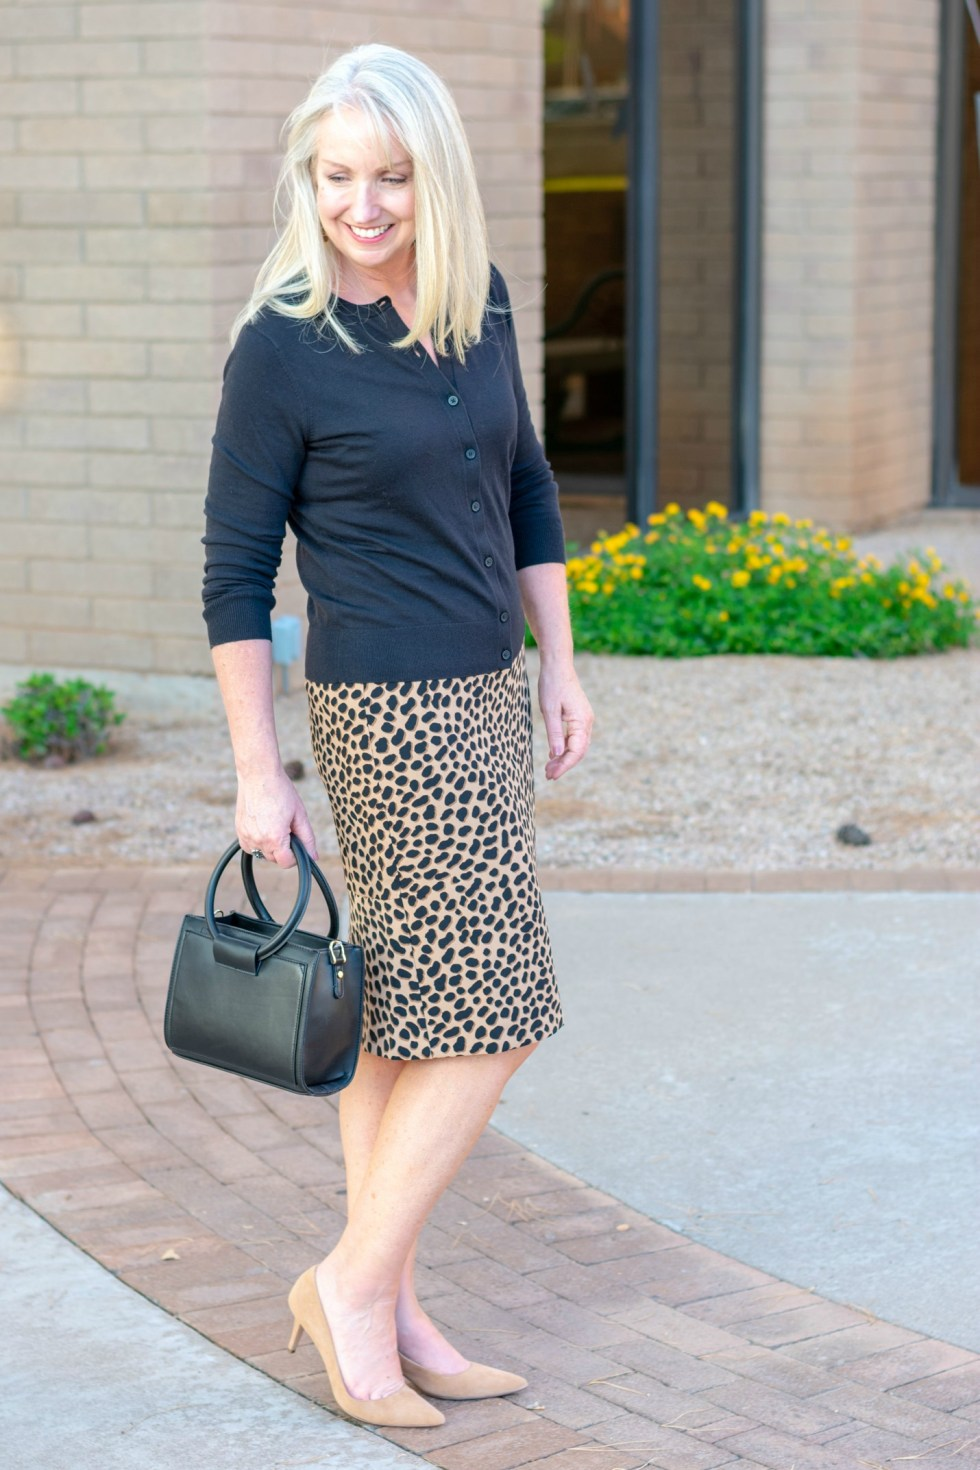 Cheetah Print Skirt and Cardigan